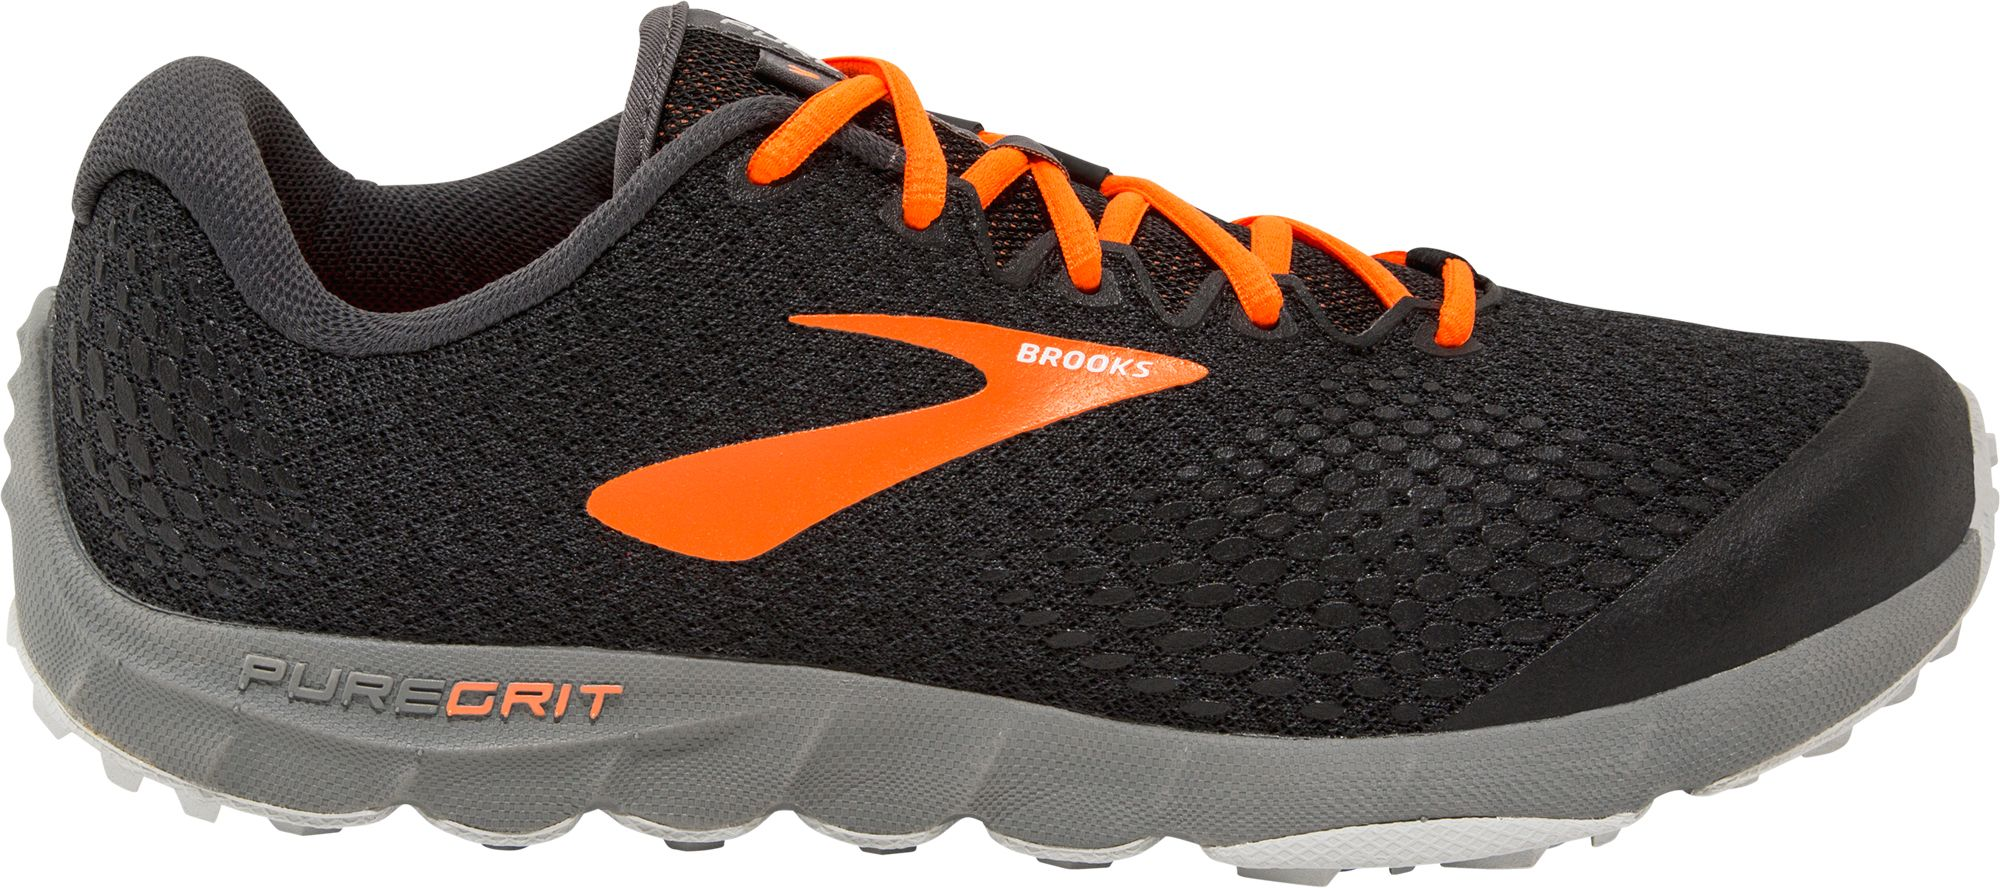 Pure Grit 7 Trail Running Shoes